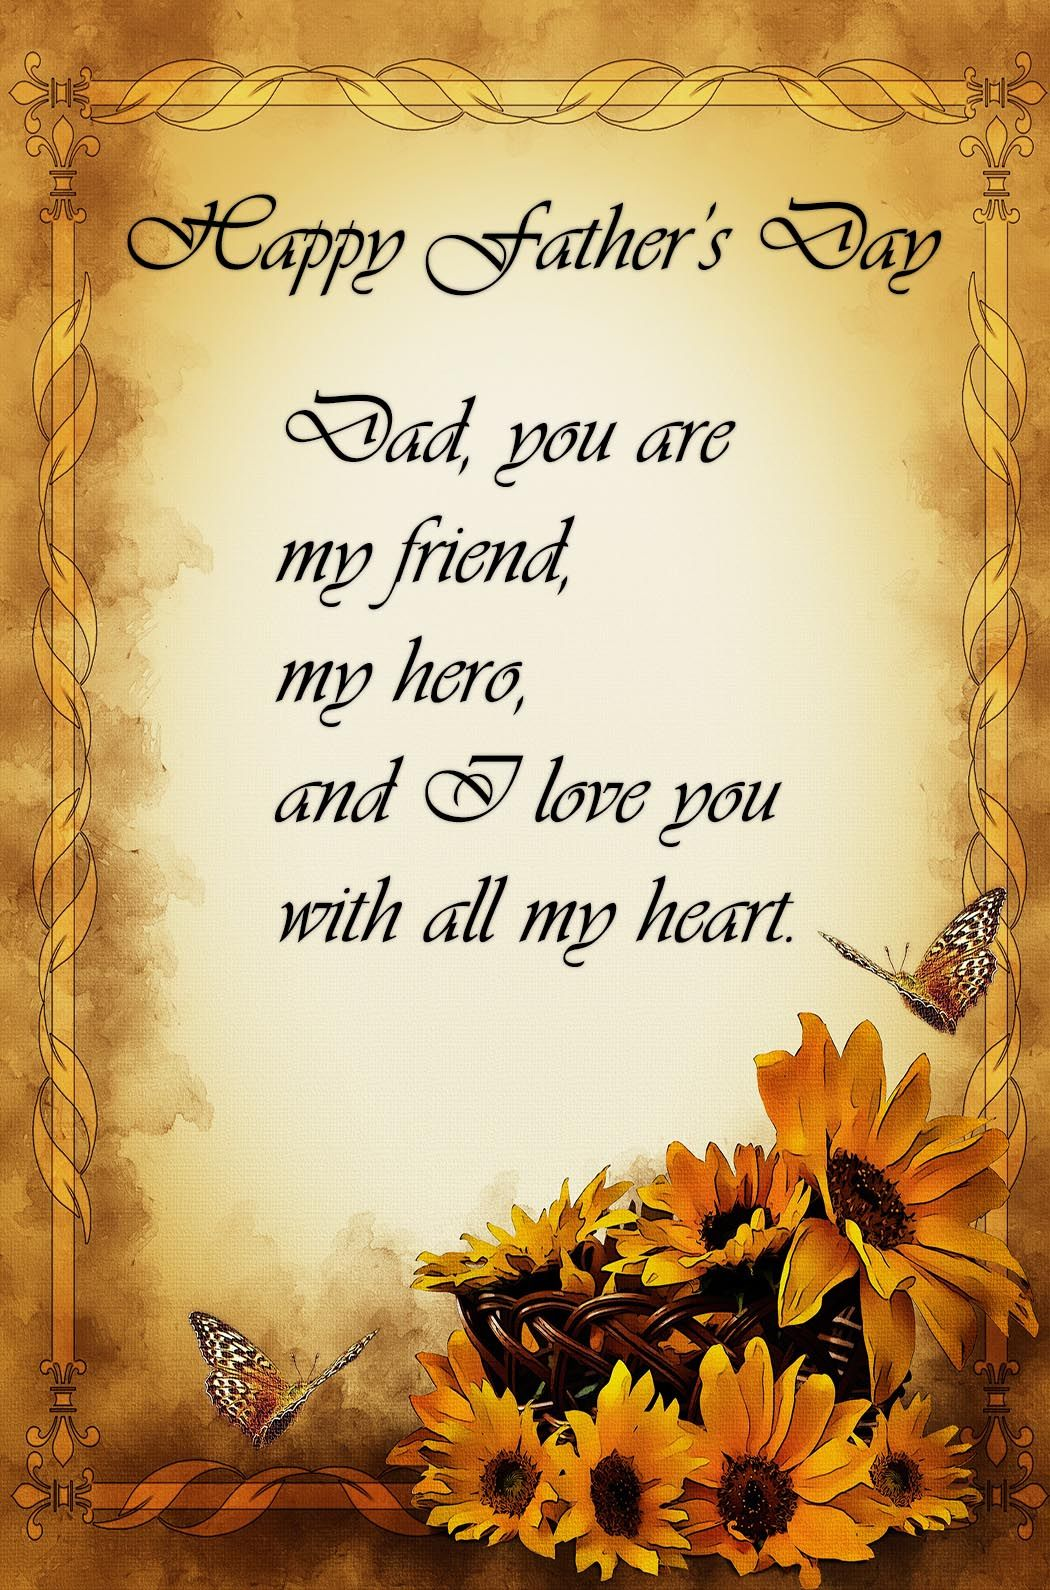 Cute I Love You Quotes For My Boyfriend Dad, You Are My Friend...